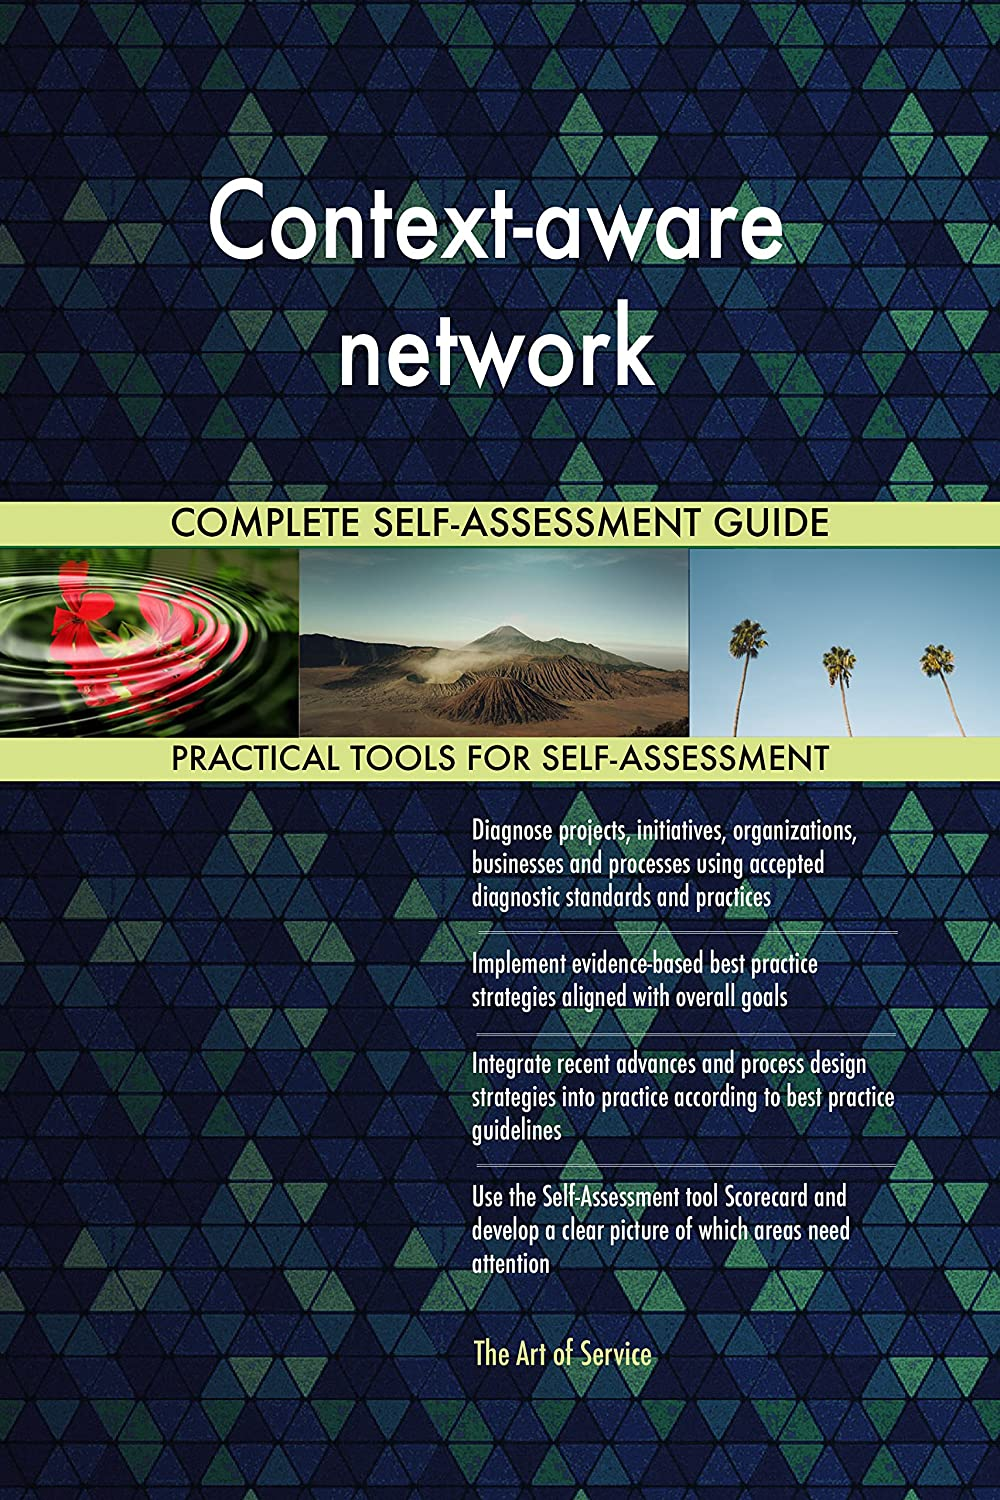 Context-aware network All-Inclusive Self-Assessment - More